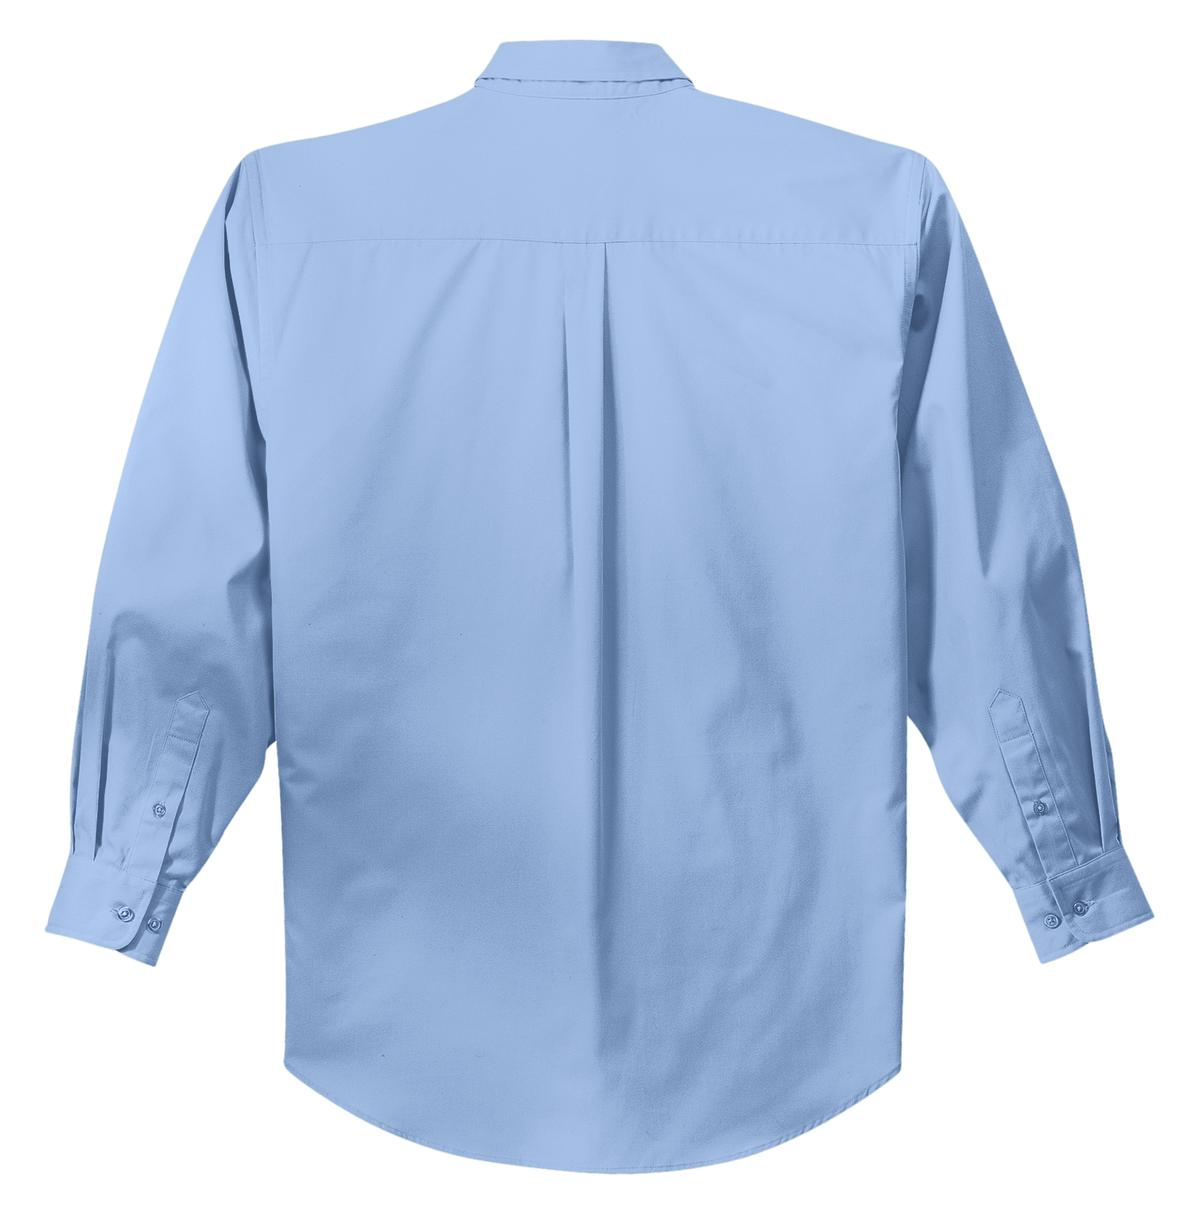 Mafoose Men's Tall Long Sleeve Easy Care Shirt Light Blue/ Light Stone-Back